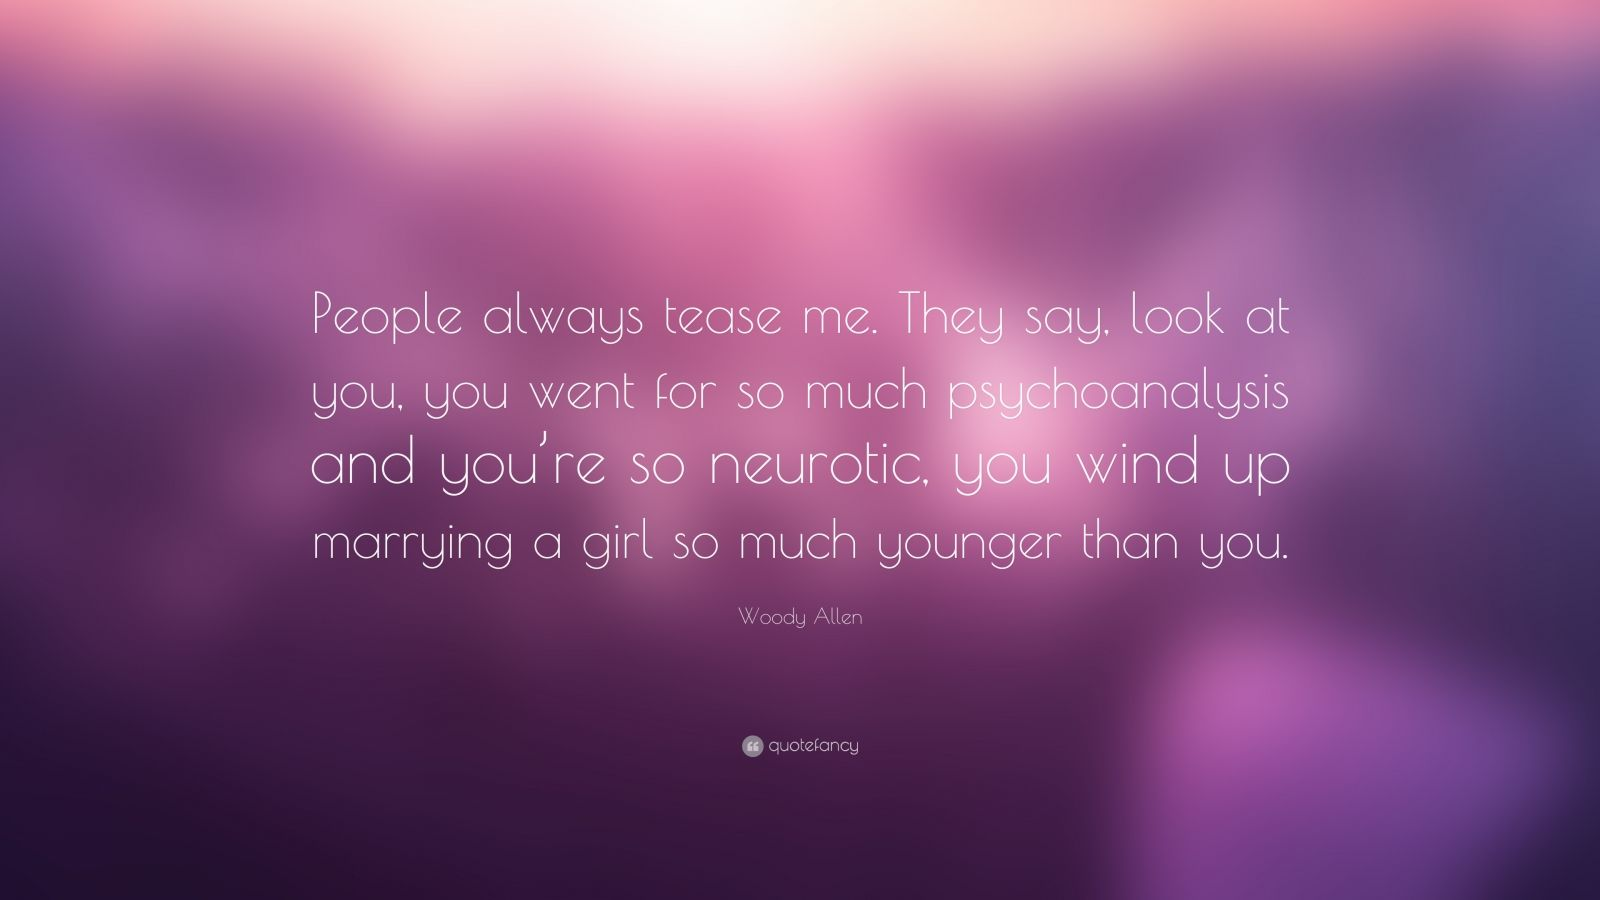 """Woody Allen Quote: """"People always tease me. They say, look at you, you went for so much psychoanalysis and you're so neurotic, you wind up marrying a girl so much younger than you."""""""